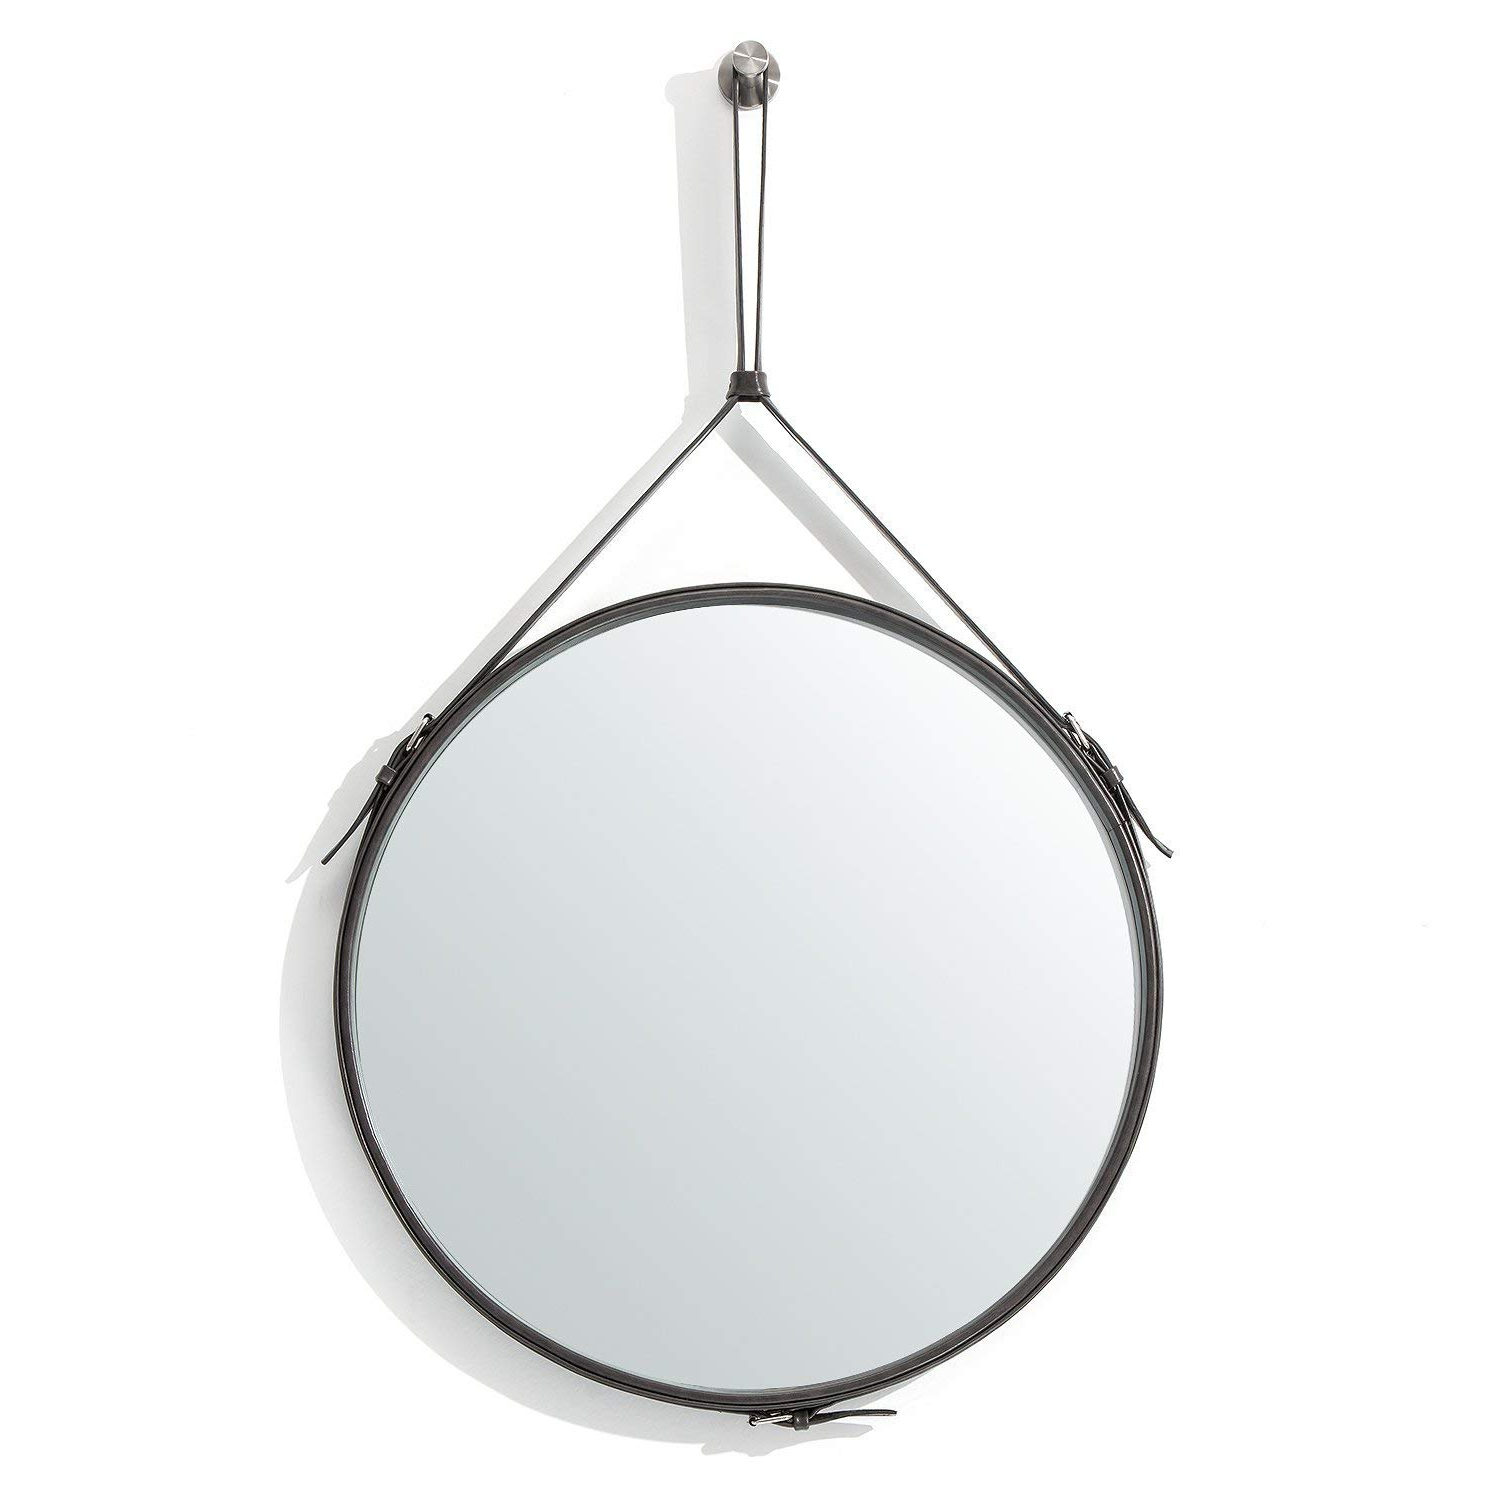 Most Popular Kentwood Round Wall Mirrors Throughout Buy Decorative Wall Mirror Round Shape Kentwood Collection Framed (View 17 of 20)